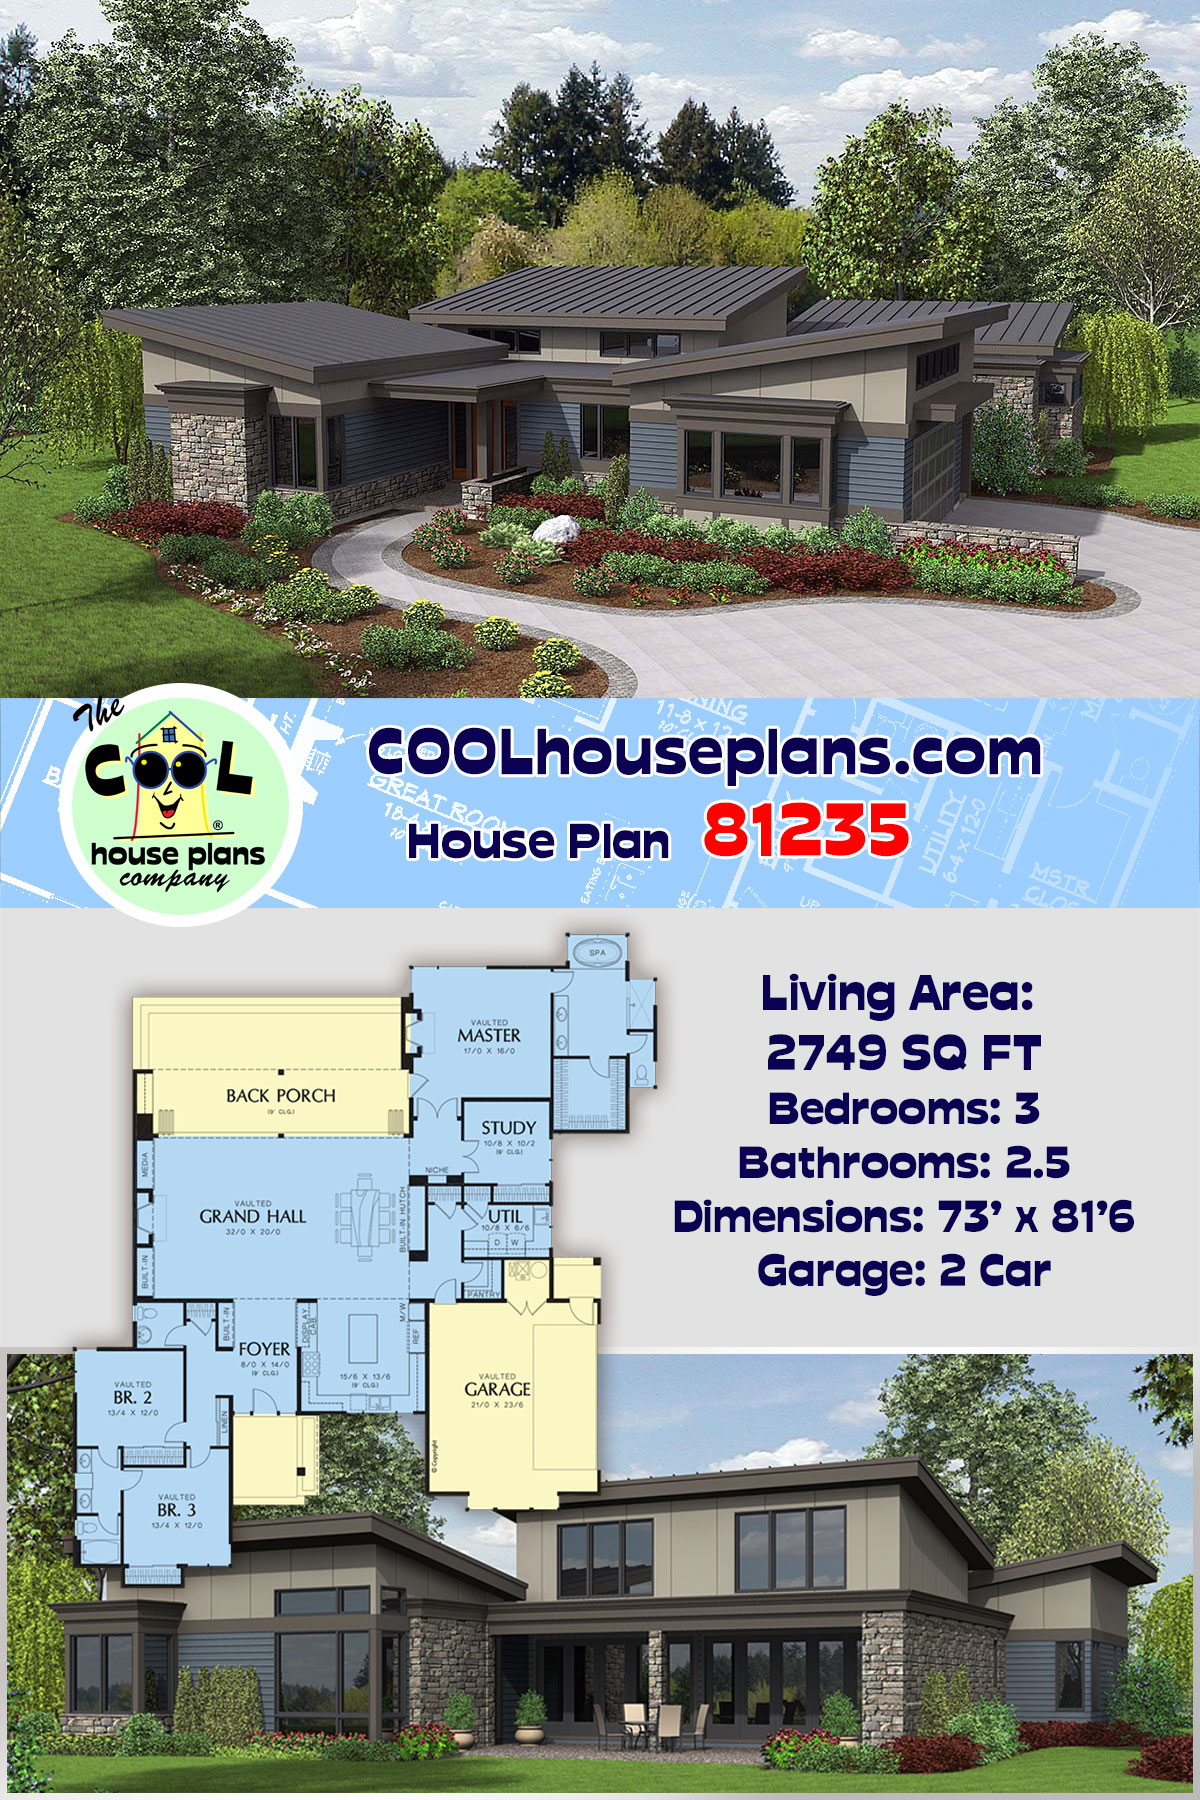 Contemporary, Modern House Plan 81235 with 3 Beds, 3 Baths, 2 Car Garage